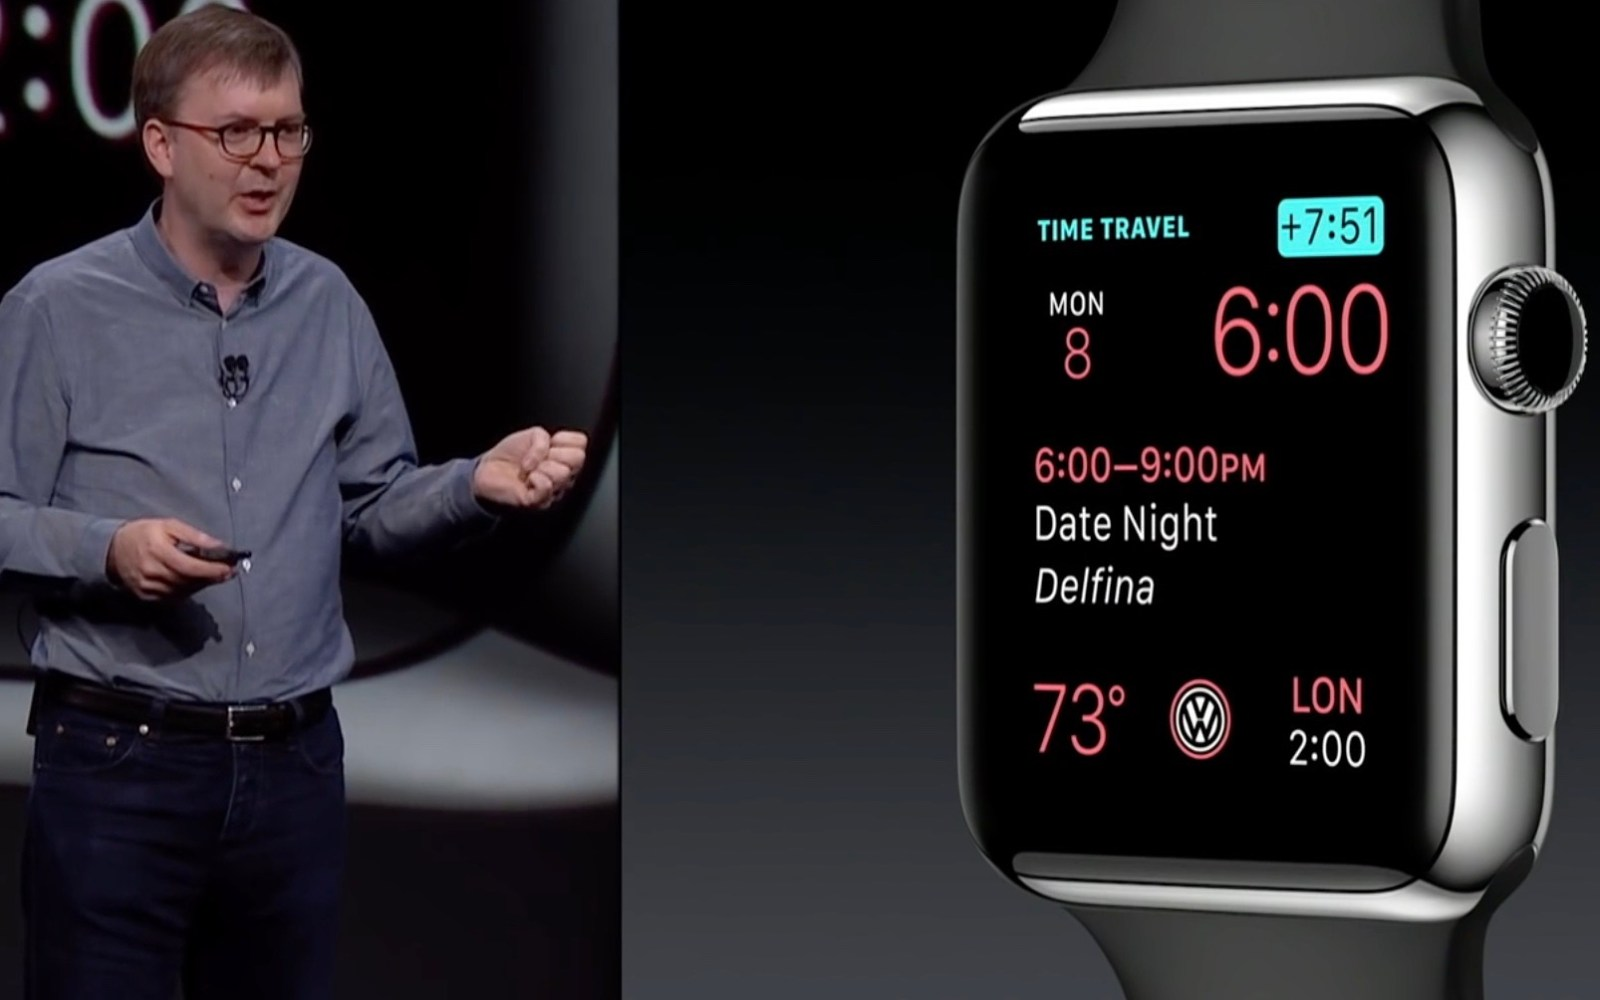 Kevin Lynch details how Apple Watch keeps time, says 4x more accurate than iPhone